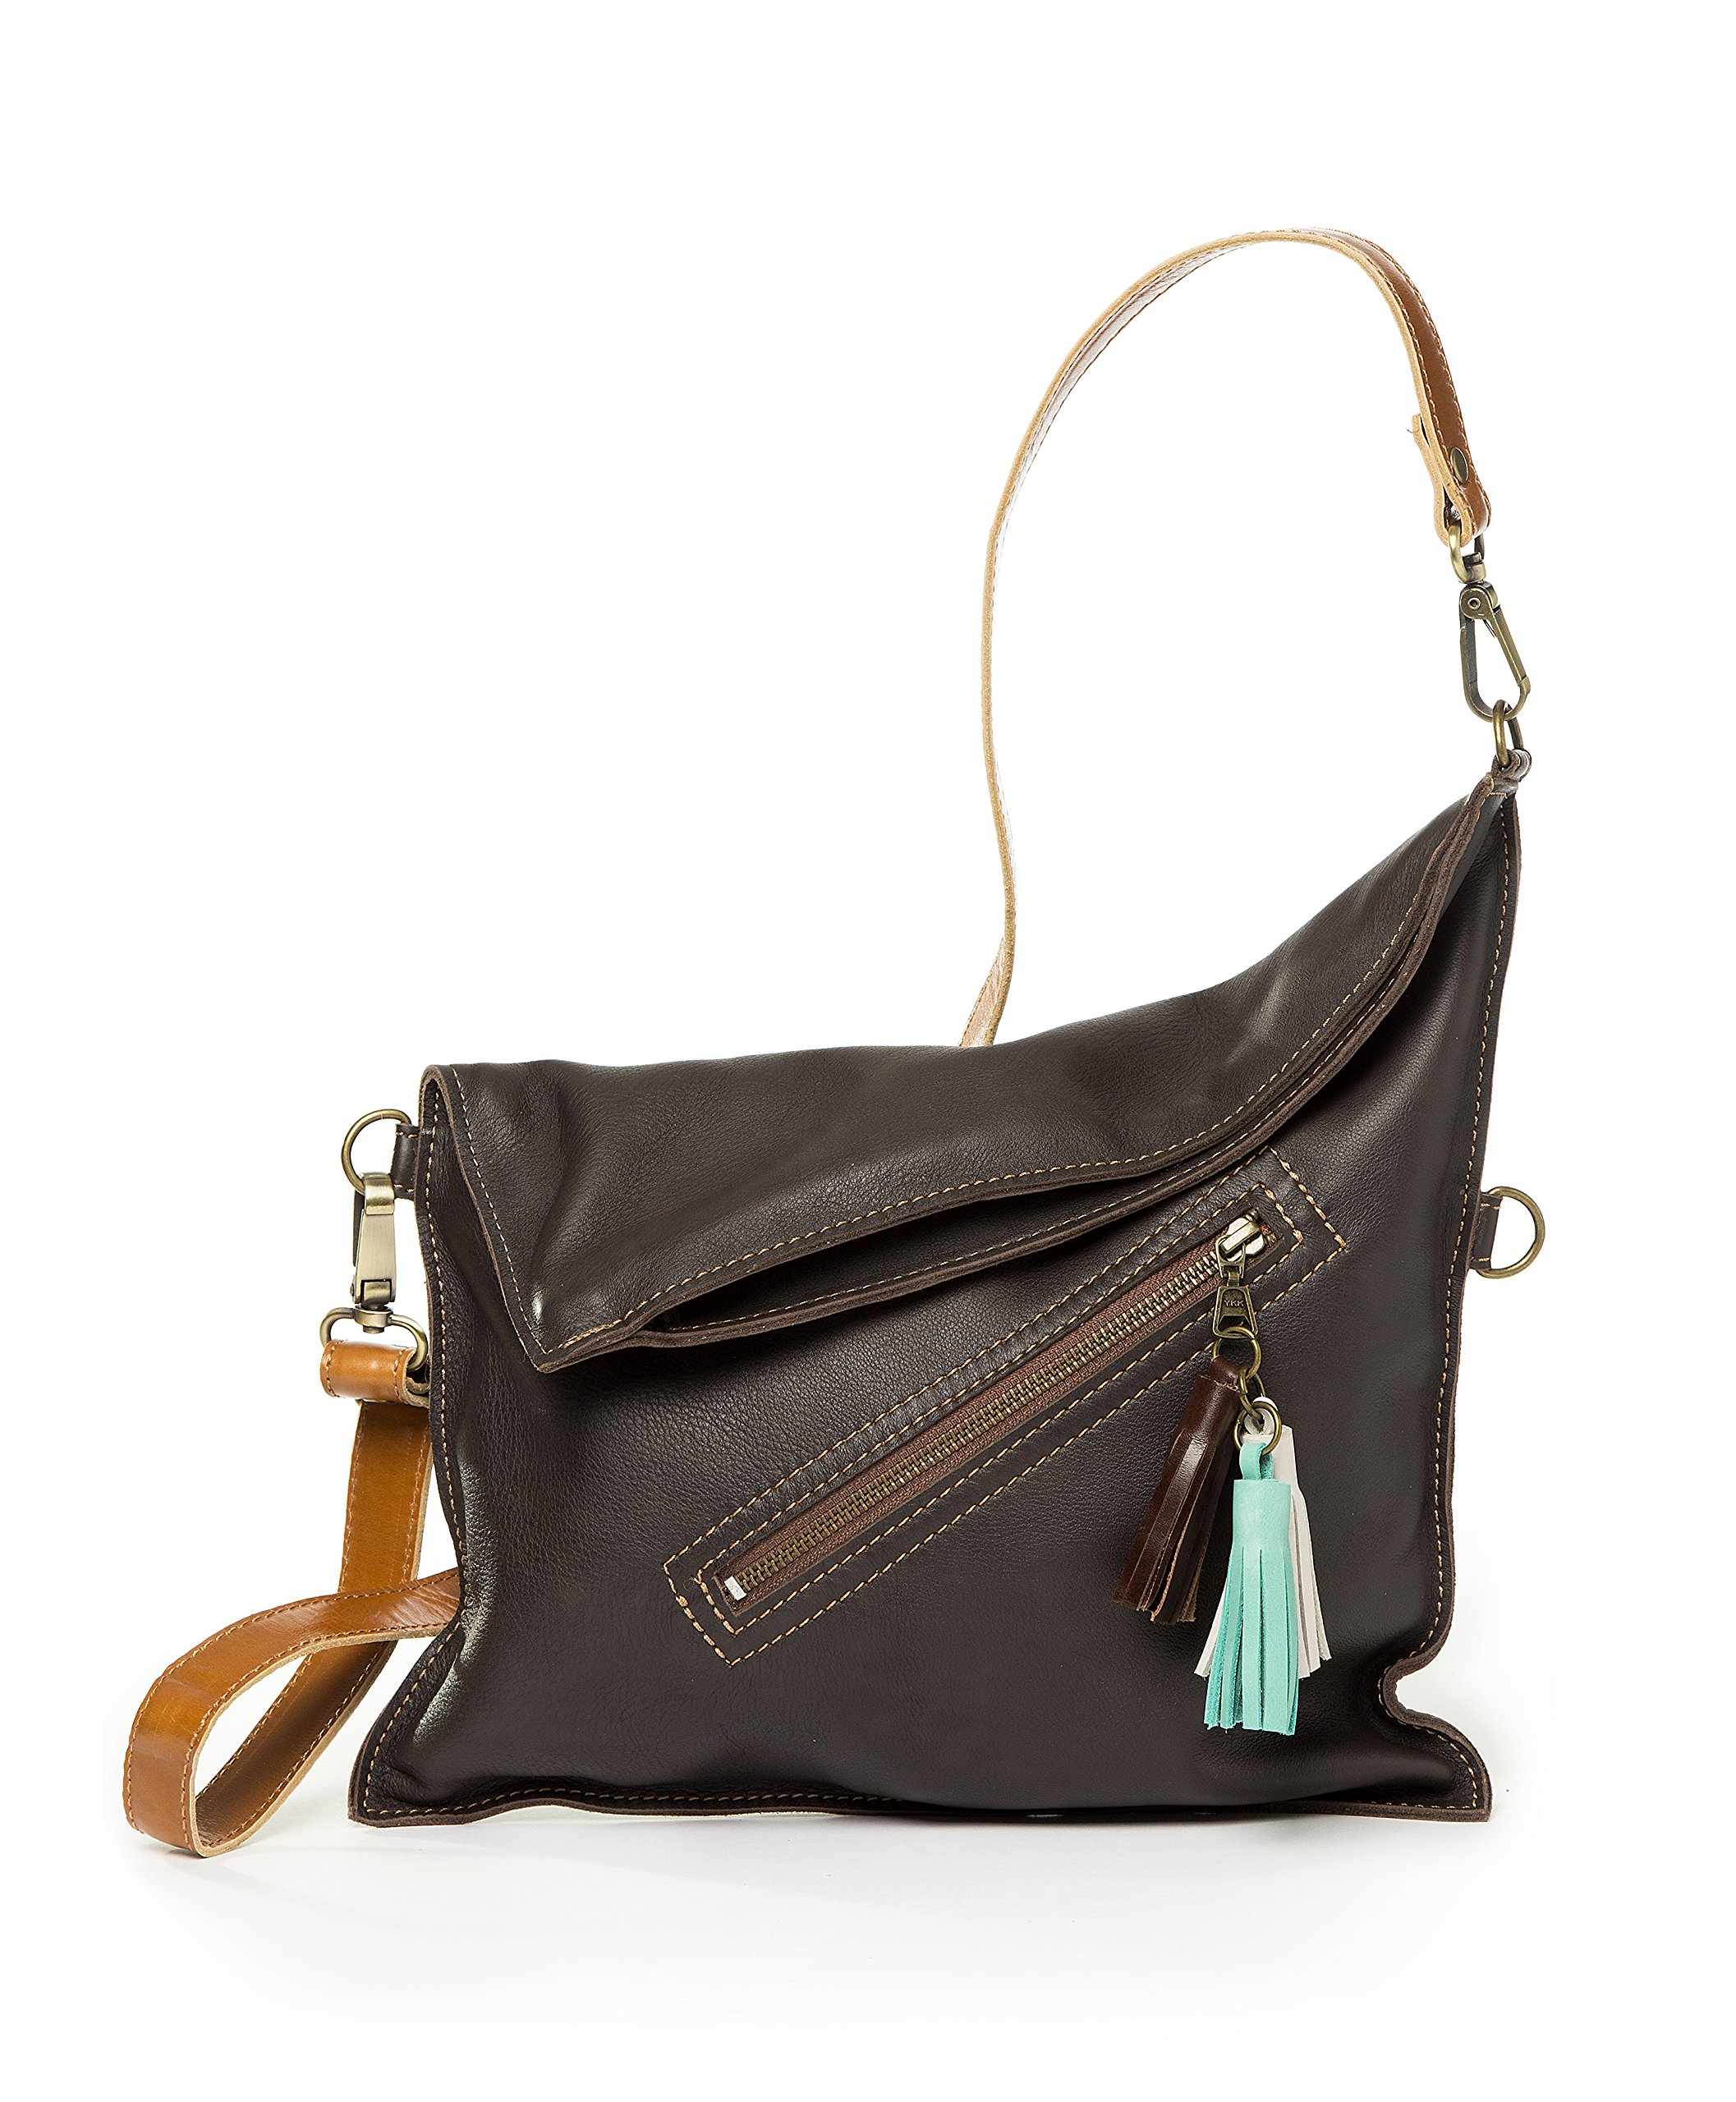 Soft leather crossbody bag | Fold over purse | Practical for woman and girls (Dark Brown)